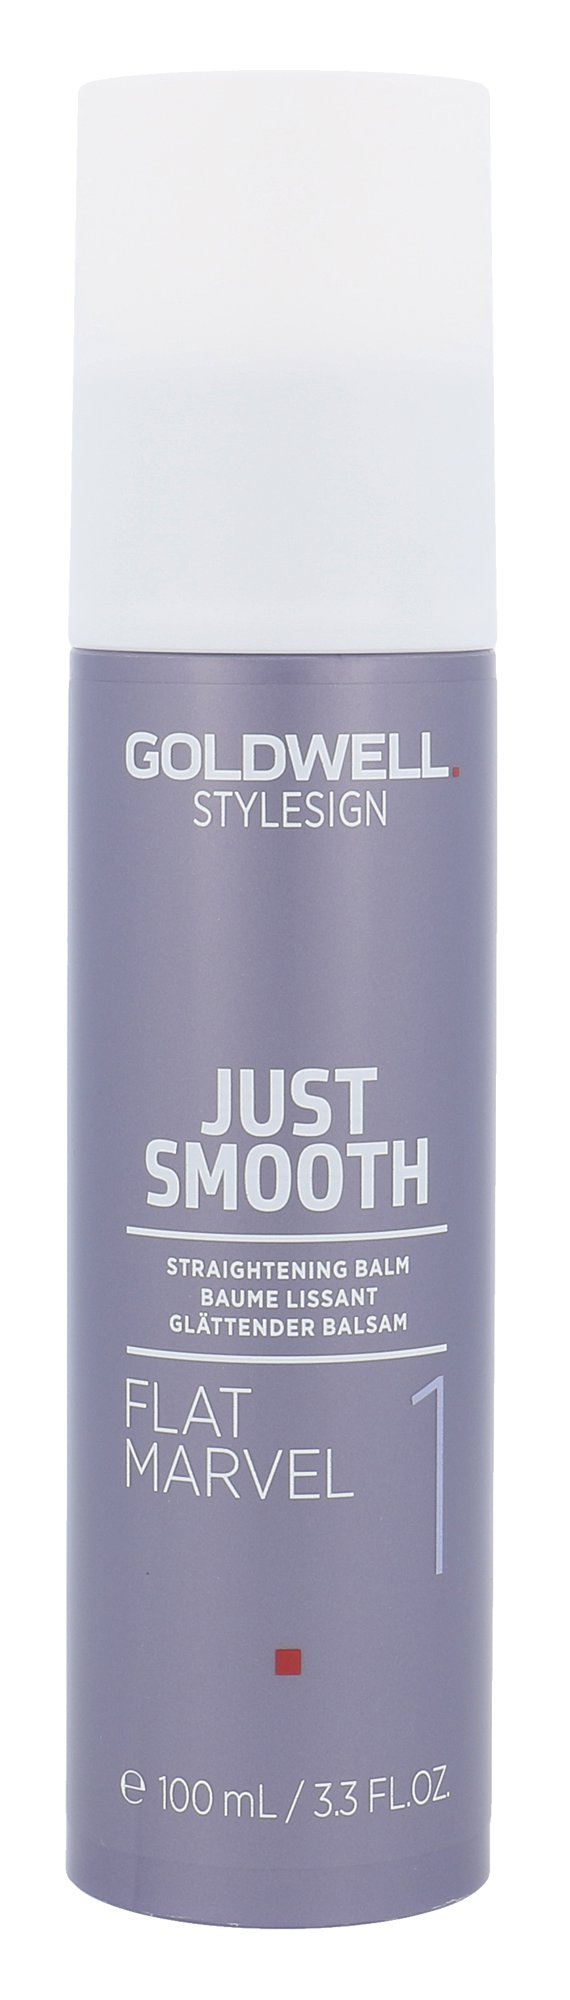 Goldwell Style Sign Just Smooth (W)